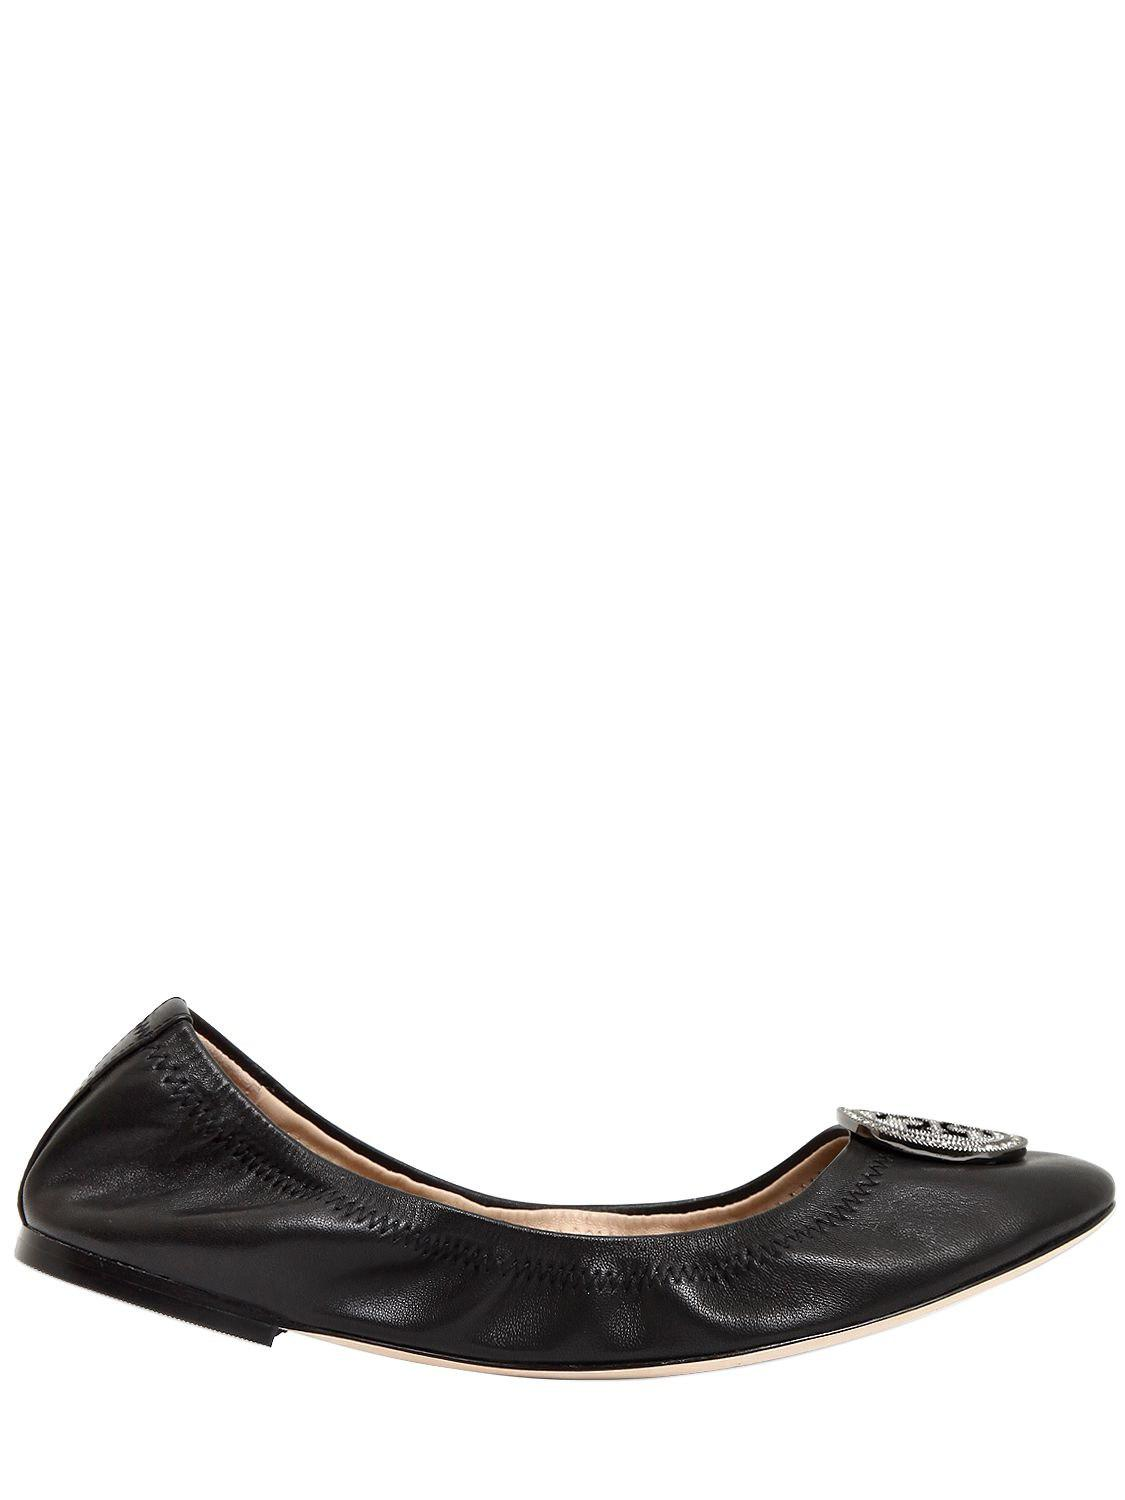 Tory Burch 10MM LIANA METALLIC LEATHER FLATS Shop Offer Cheap Online Cheap Pictures vyf33